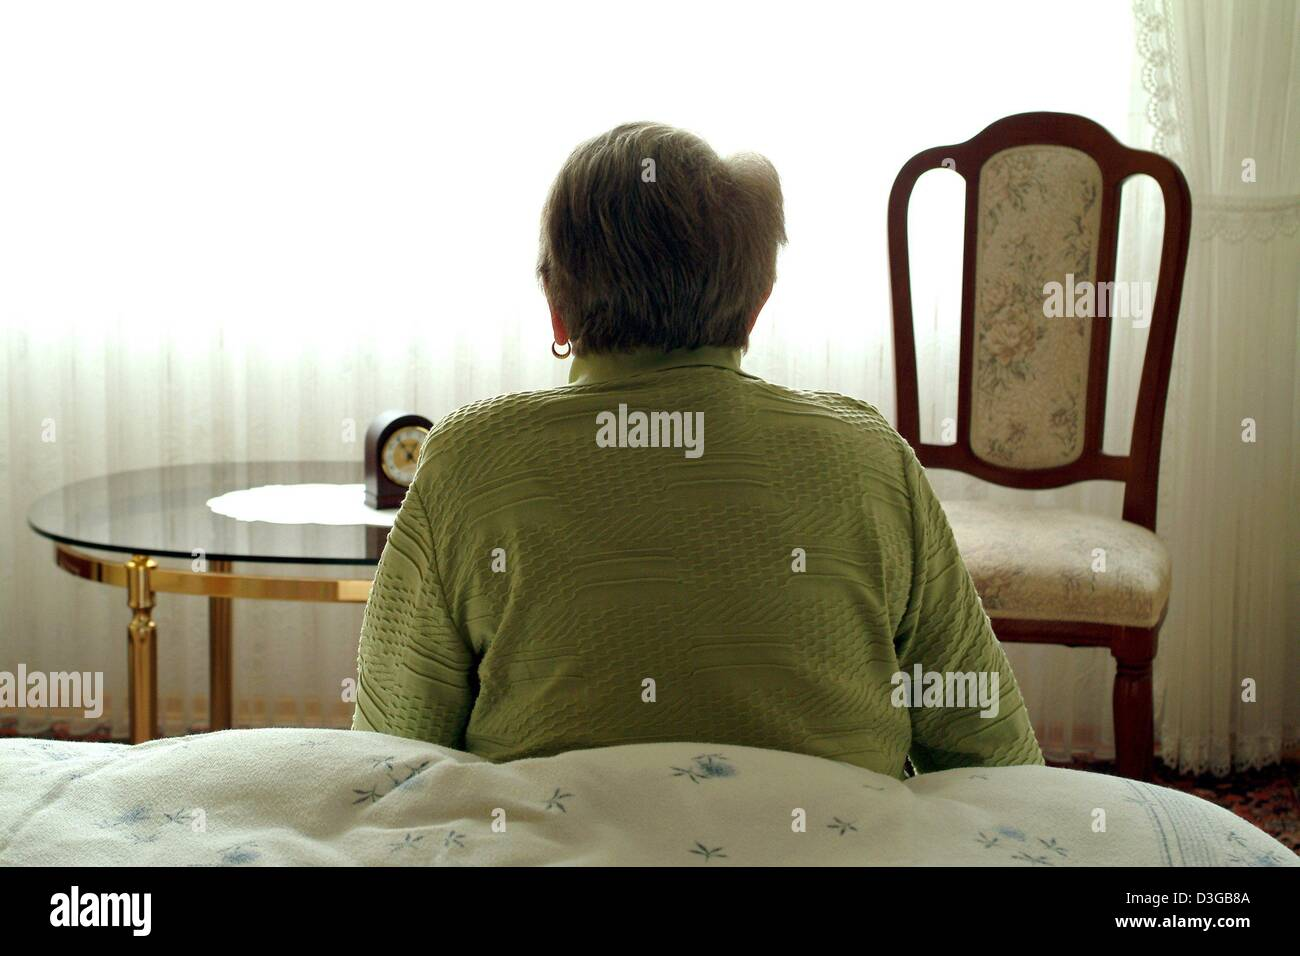 (dpa) - An older woman sits on a bed in her bedroom in Frankfurt, Germany, 19 October 2004. Stock Photo